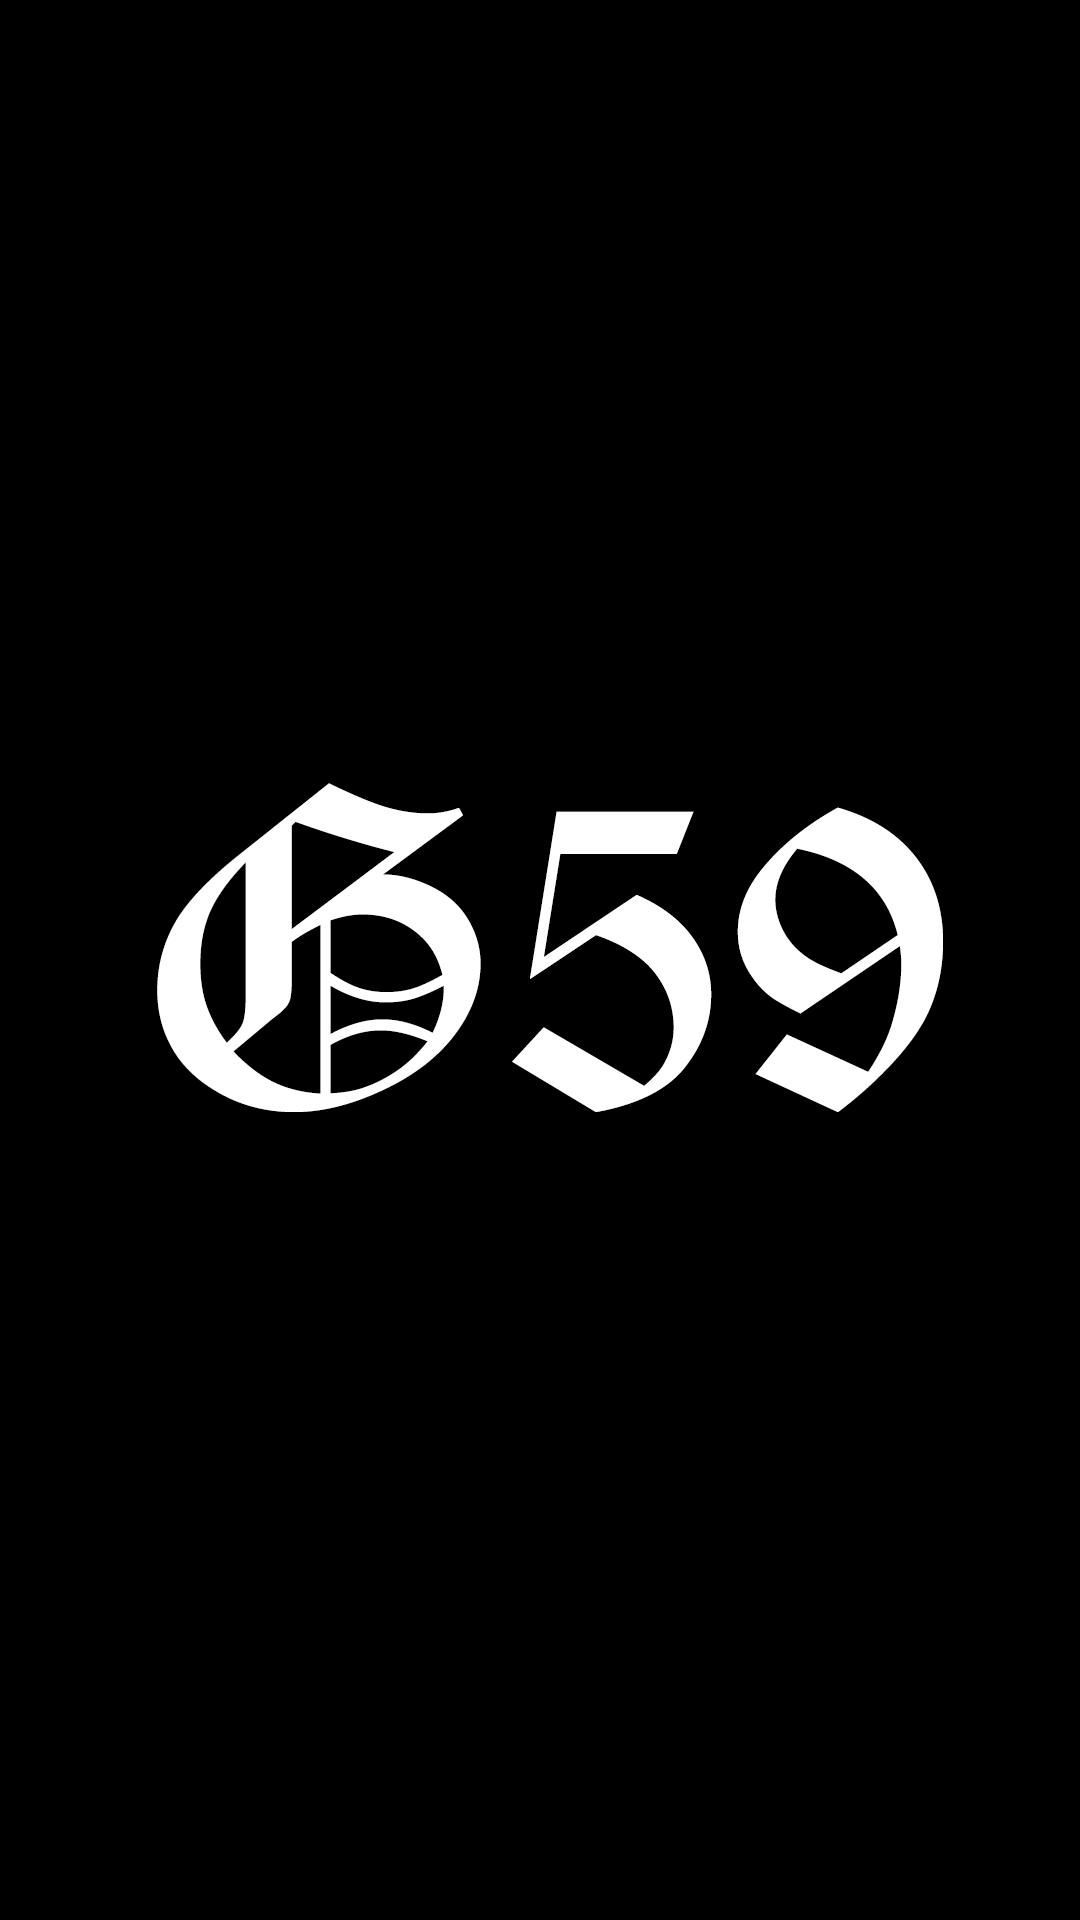 G59 Wallpapers Top Free G59 Backgrounds Wallpaperaccess